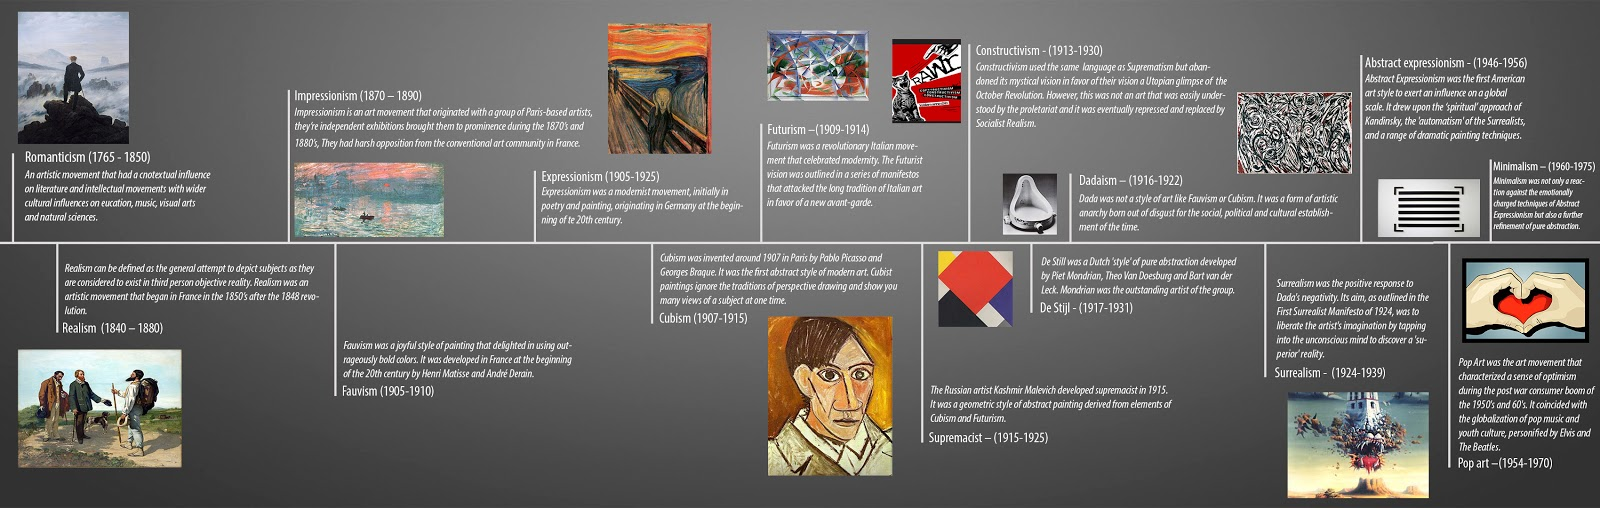 Timeline and research unit 5 influences in art design the design of the timeline was too be simple and informative but also it had too look good and i think i ticked all of these boxes altavistaventures